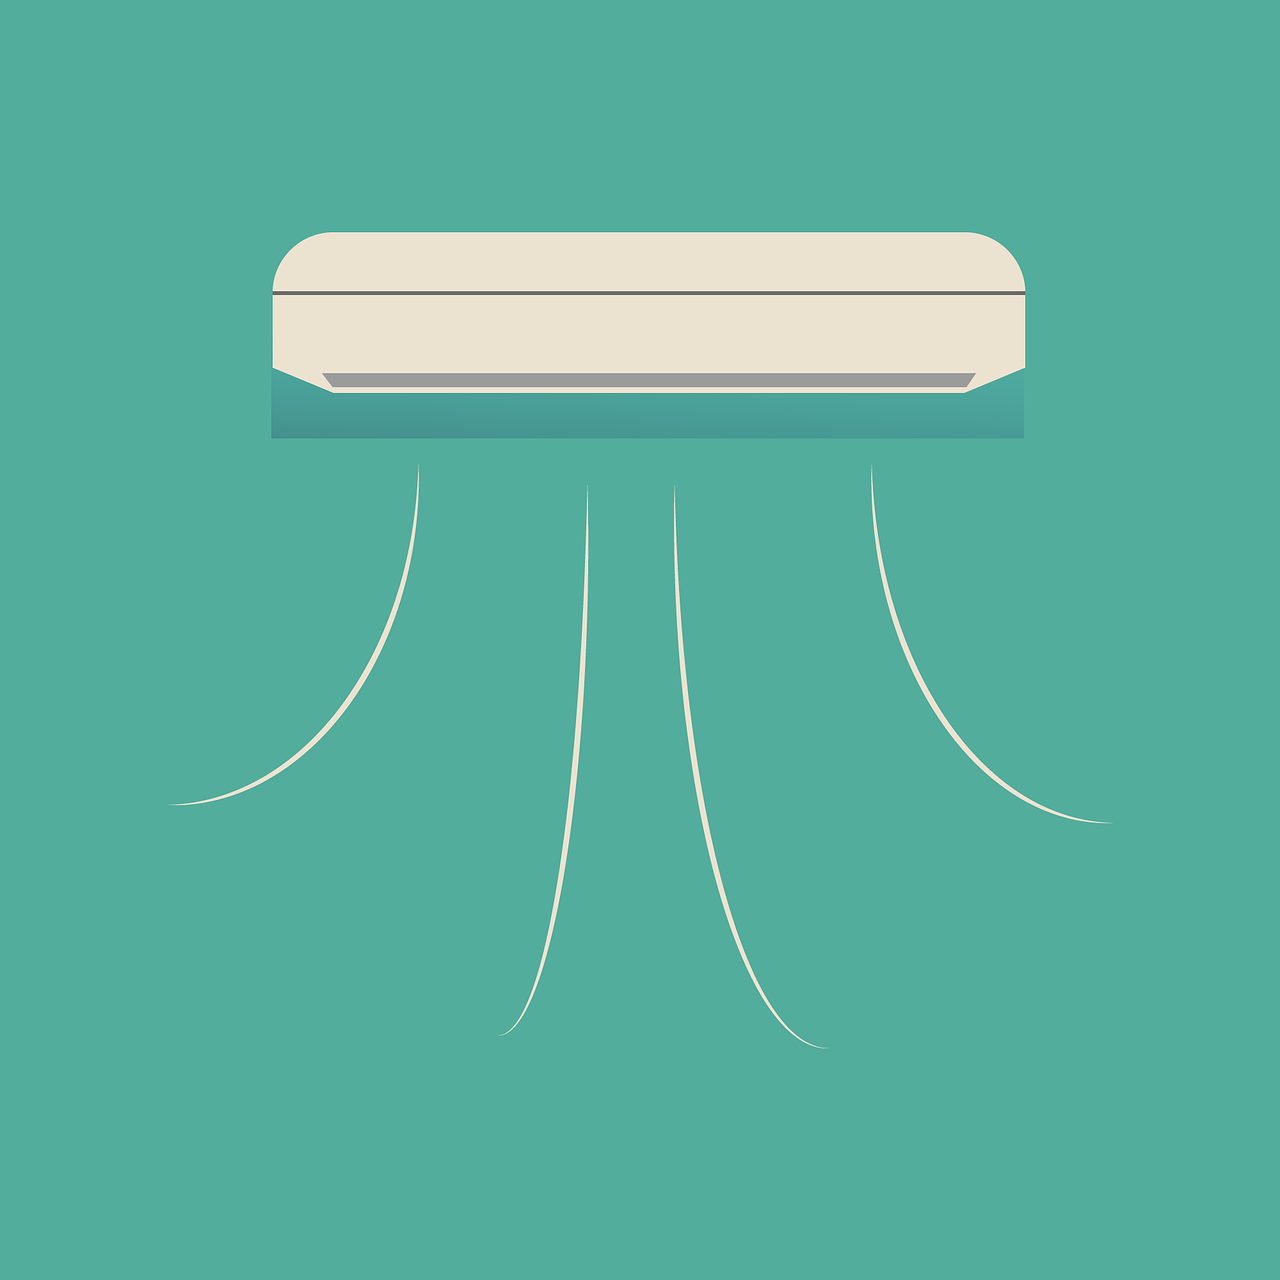 air-conditioner-1614698_1280.png